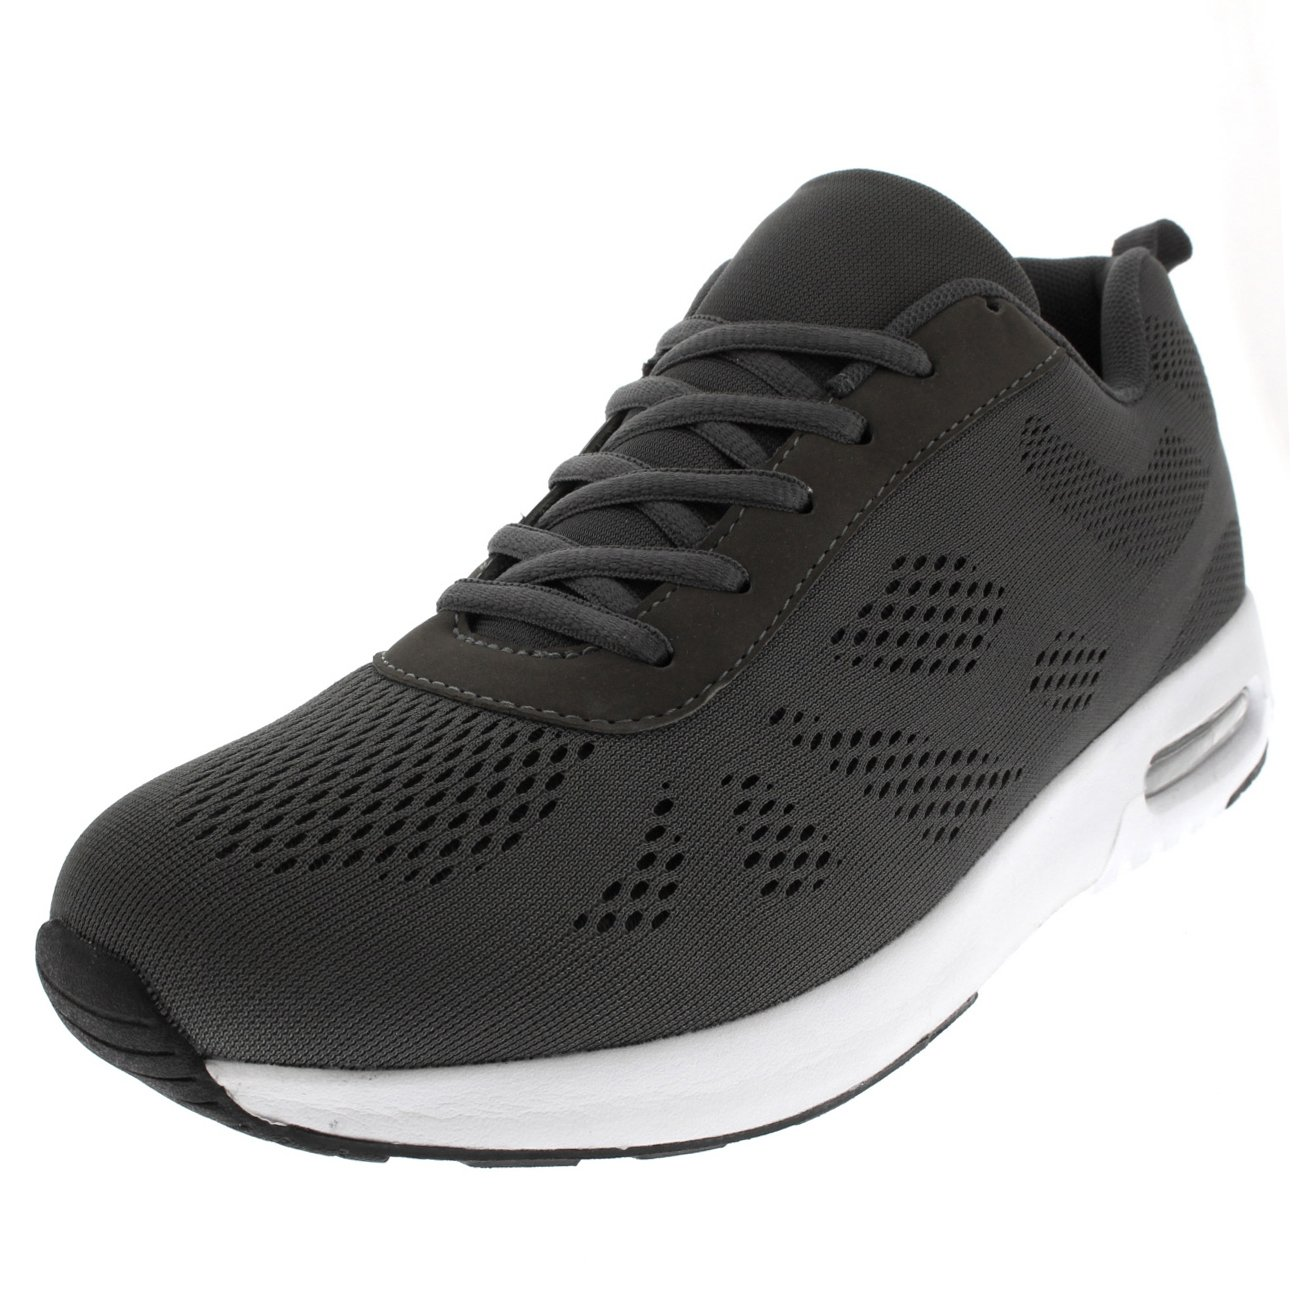 Get Fit Mens Fitness Air Bubble Sport Walking Running Performance Shoes Lightweight Trainers